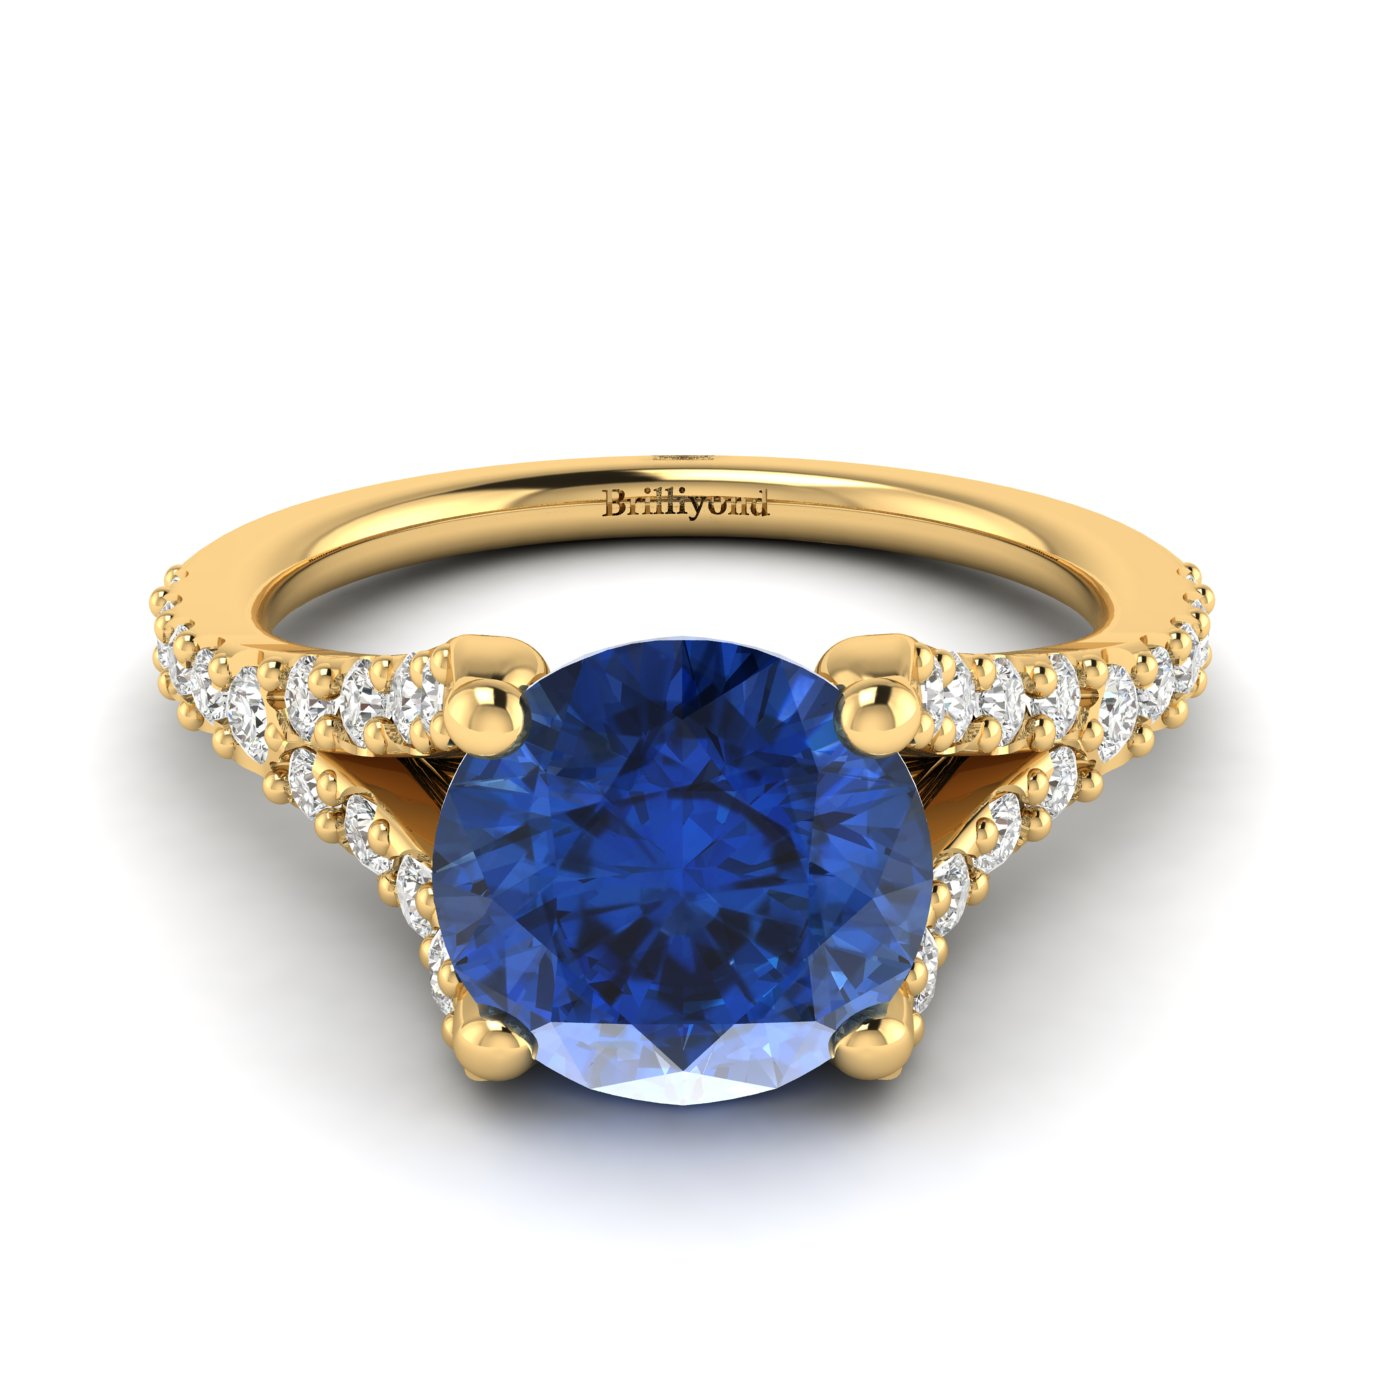 This Juliana inspired engagement ring features a round cut 6mm blue Ceylon sapphire centre stone.